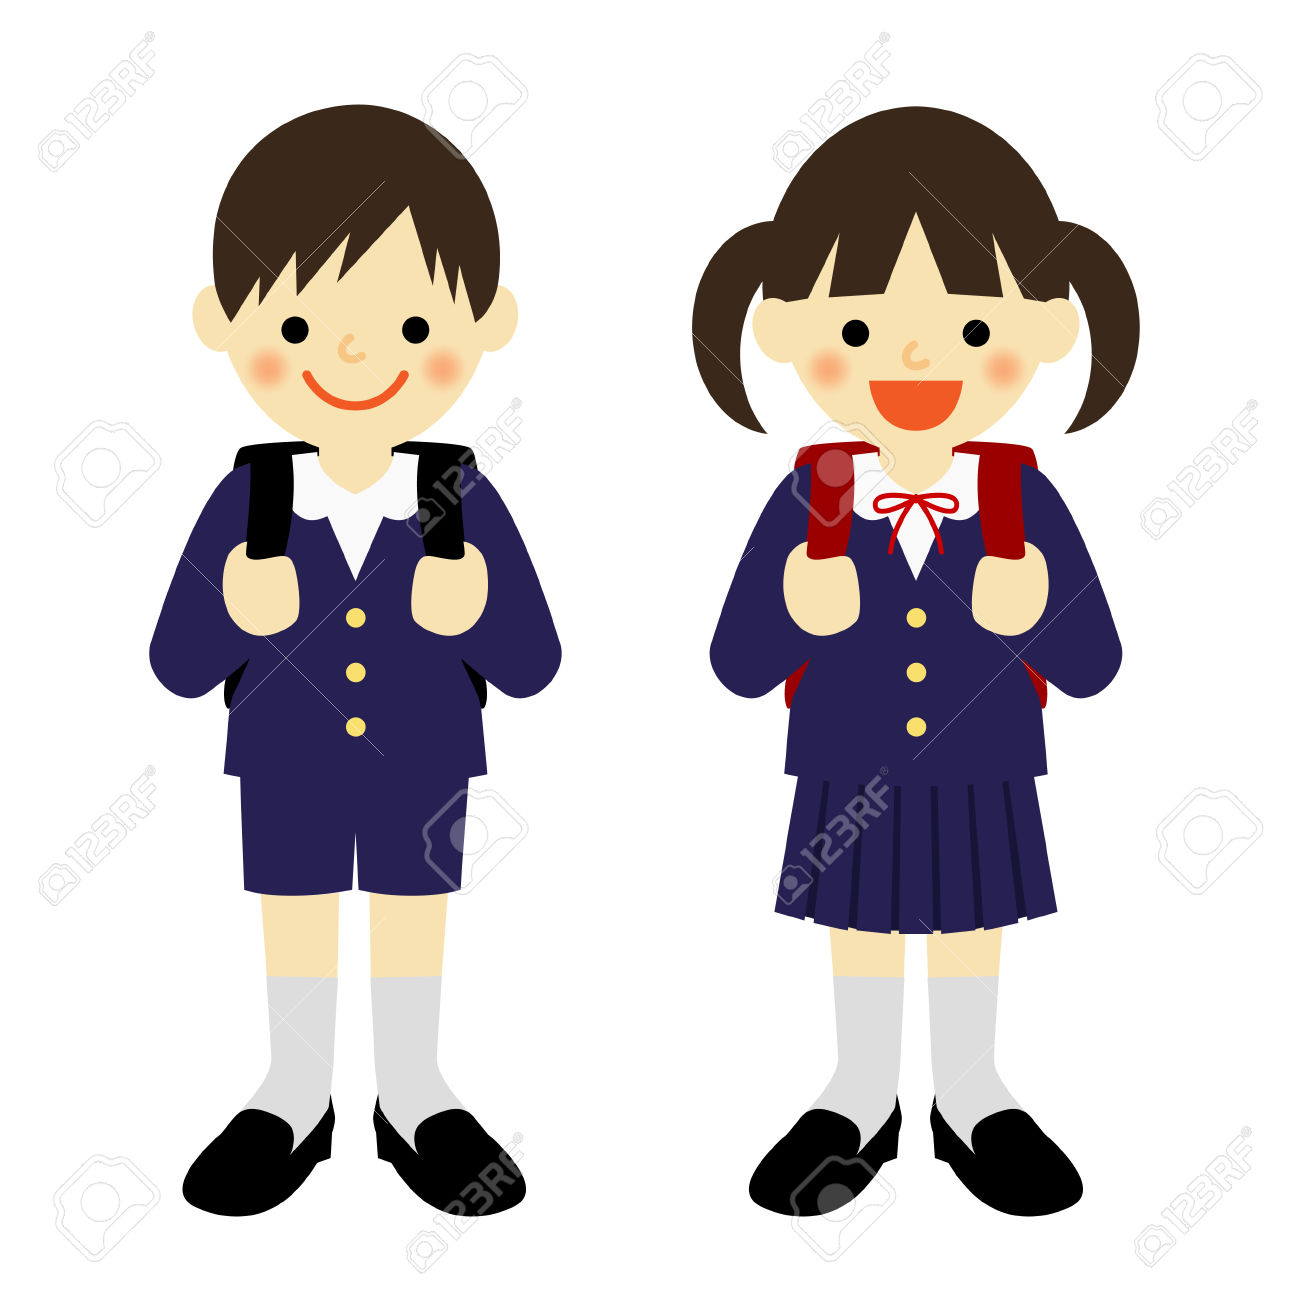 Uniform clipart free Uniform Clipart – Free Clipart Images free